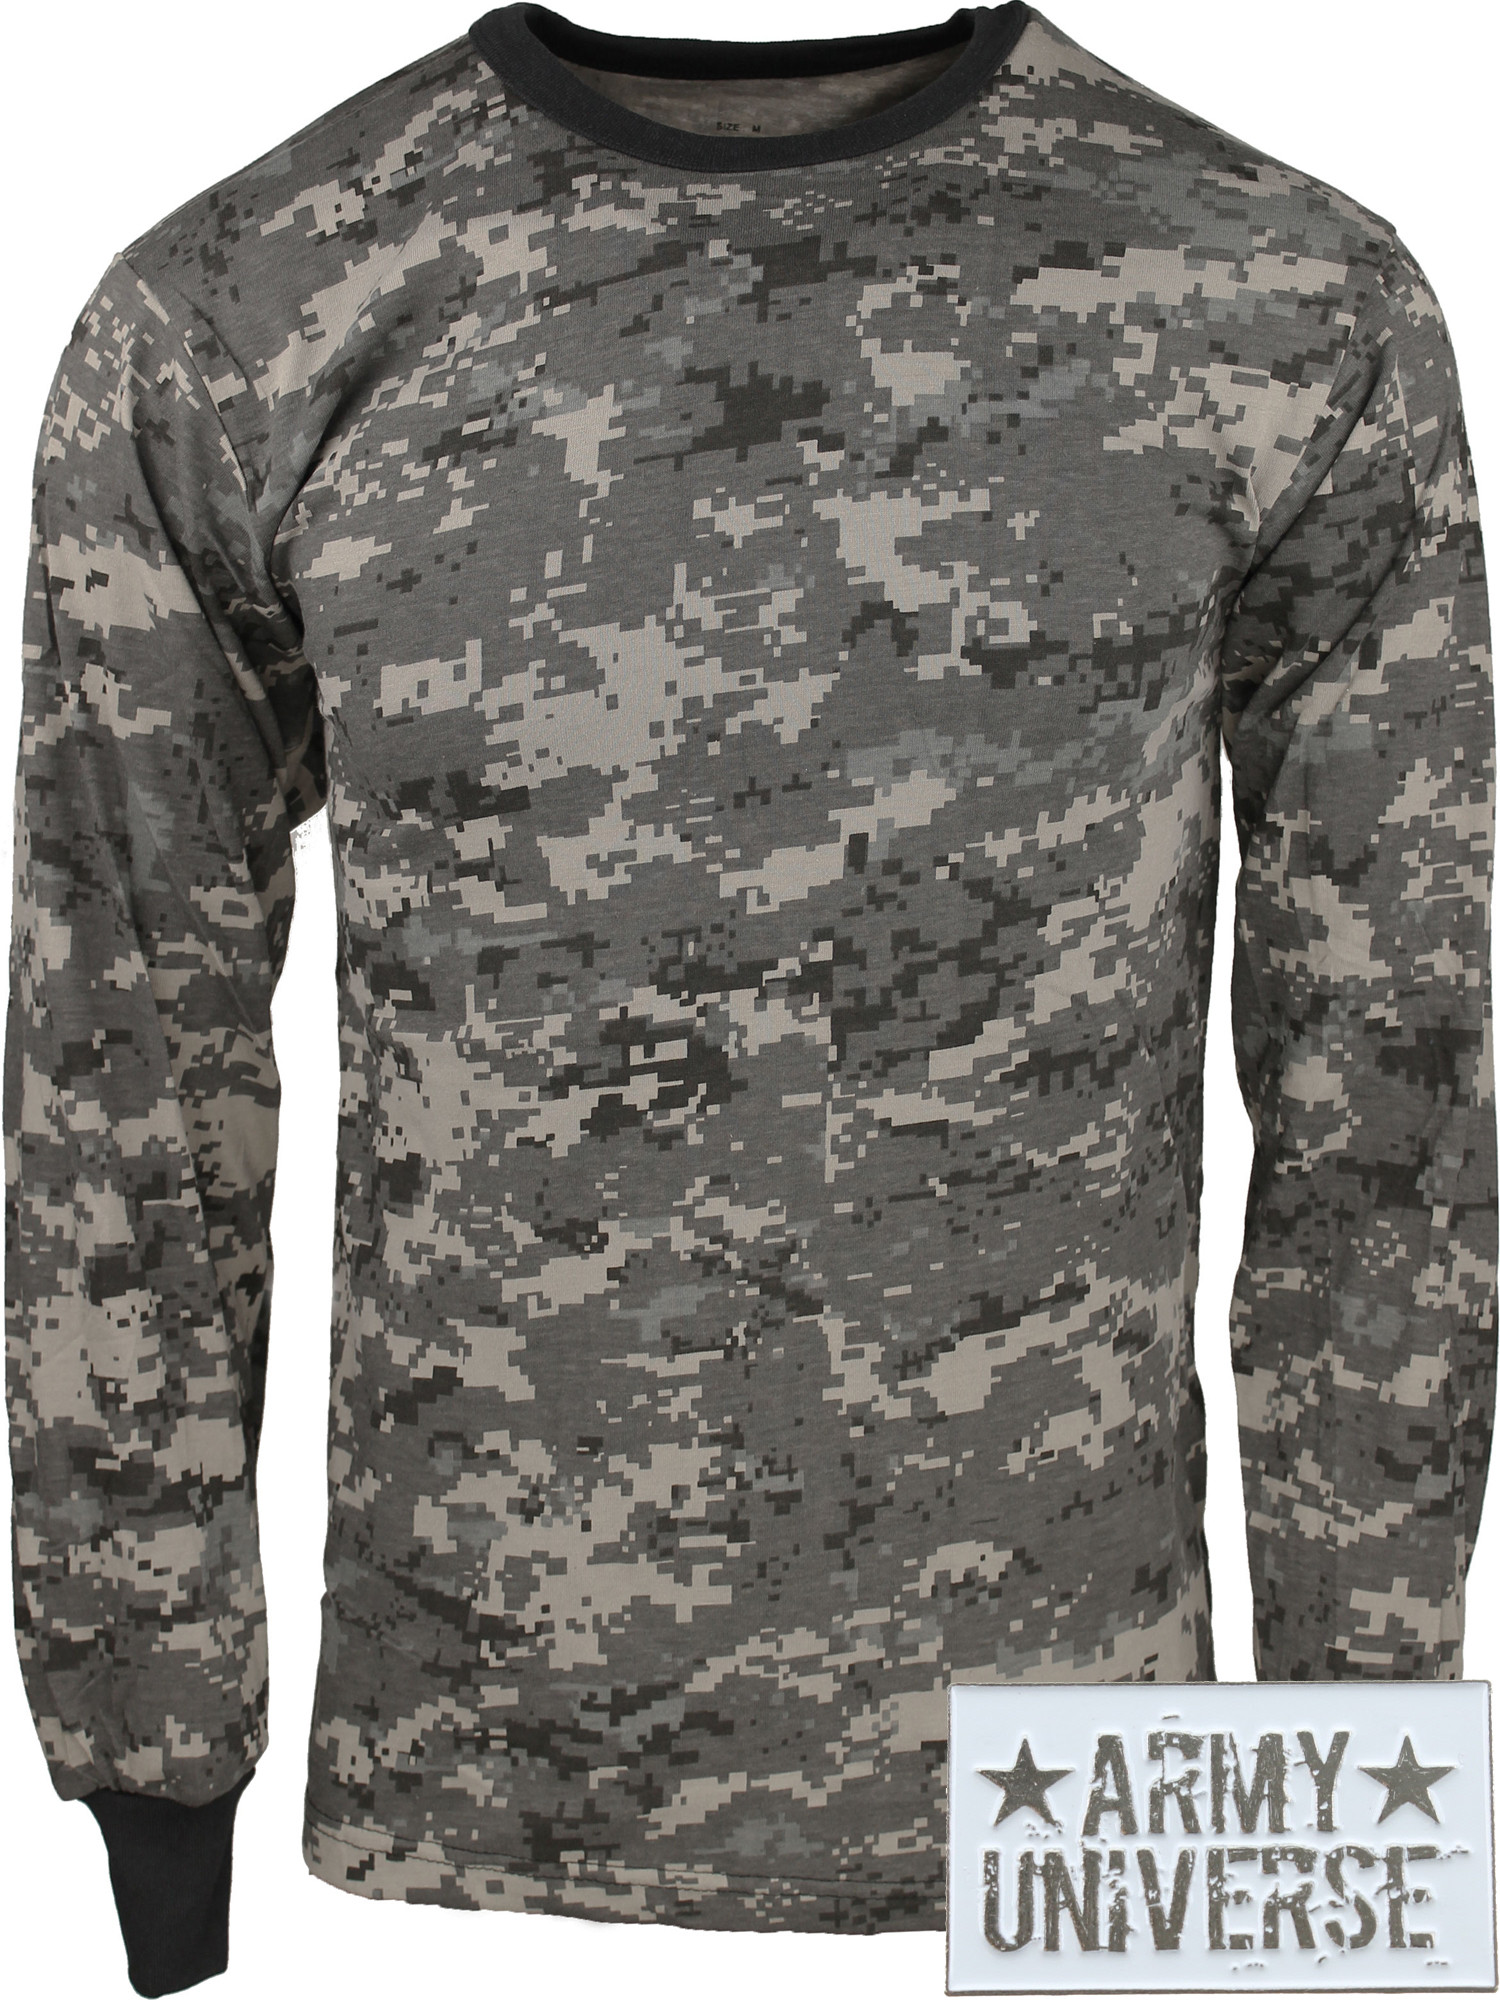 ... Subdued Urban Digital Camouflage Military Crewneck Long Sleeve T Shirt  w  ArmyUniverse® Pin ... 762a936b778